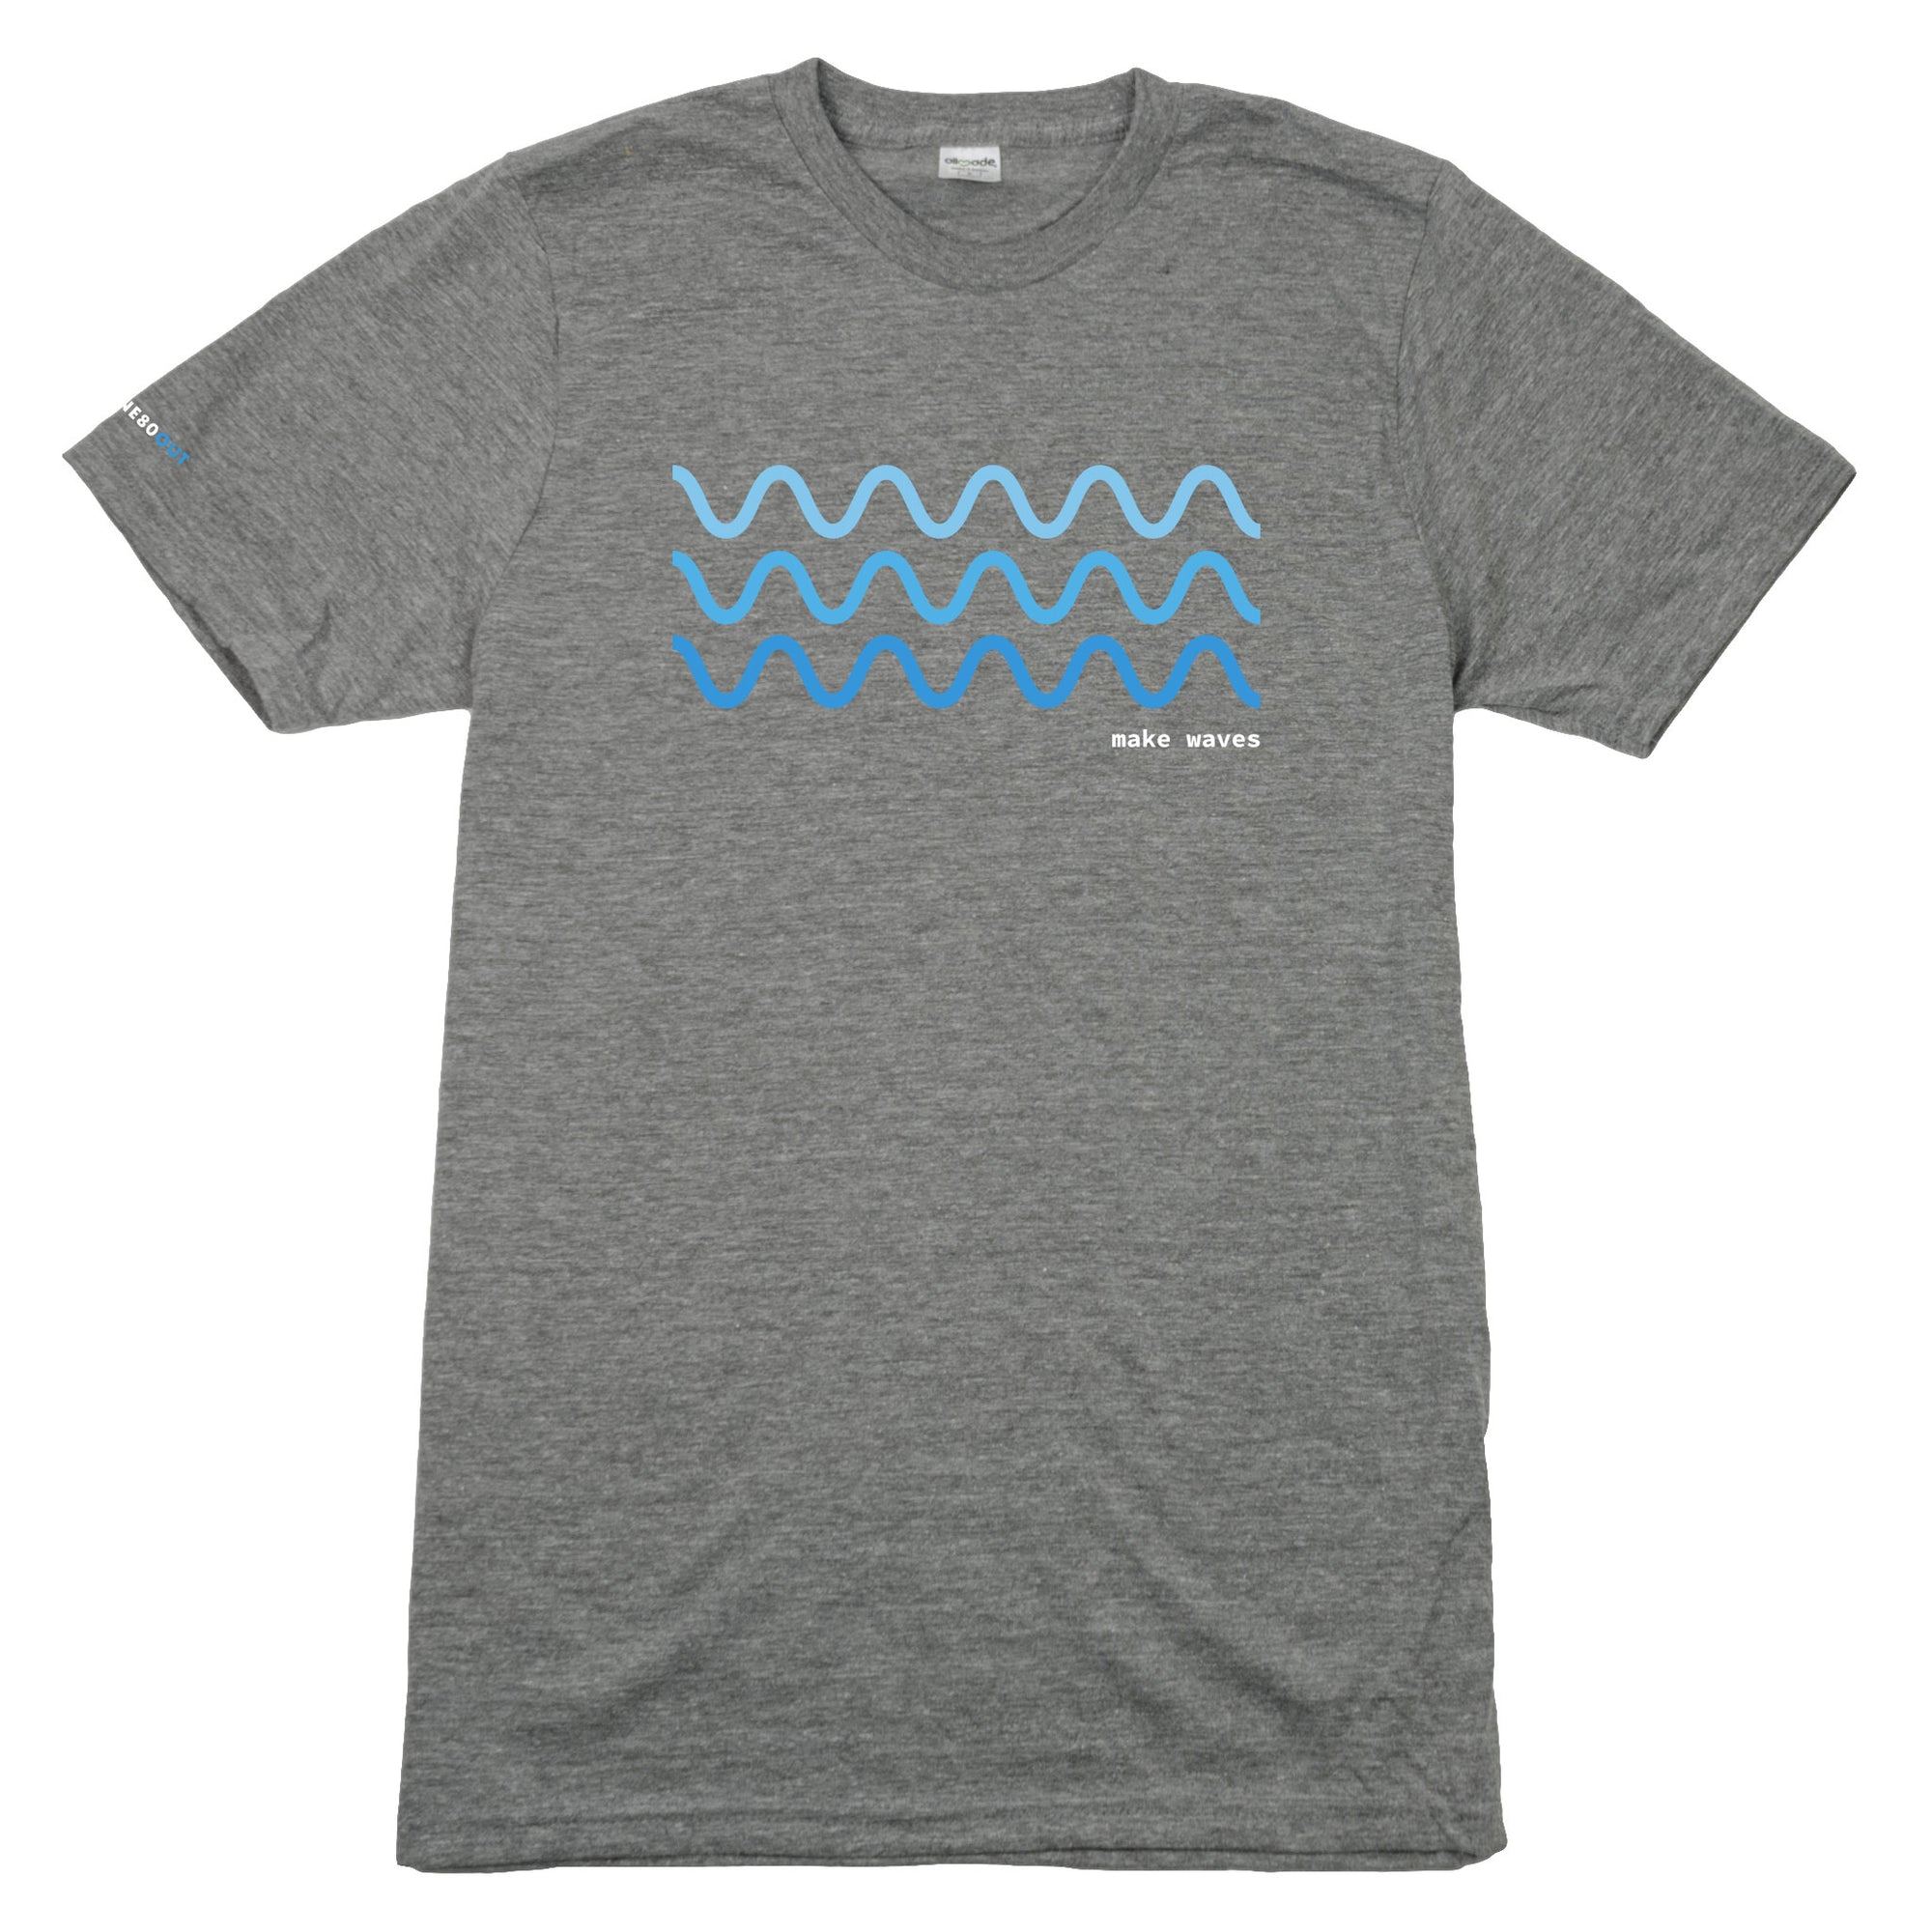 Men's Make Waves T-Shirt